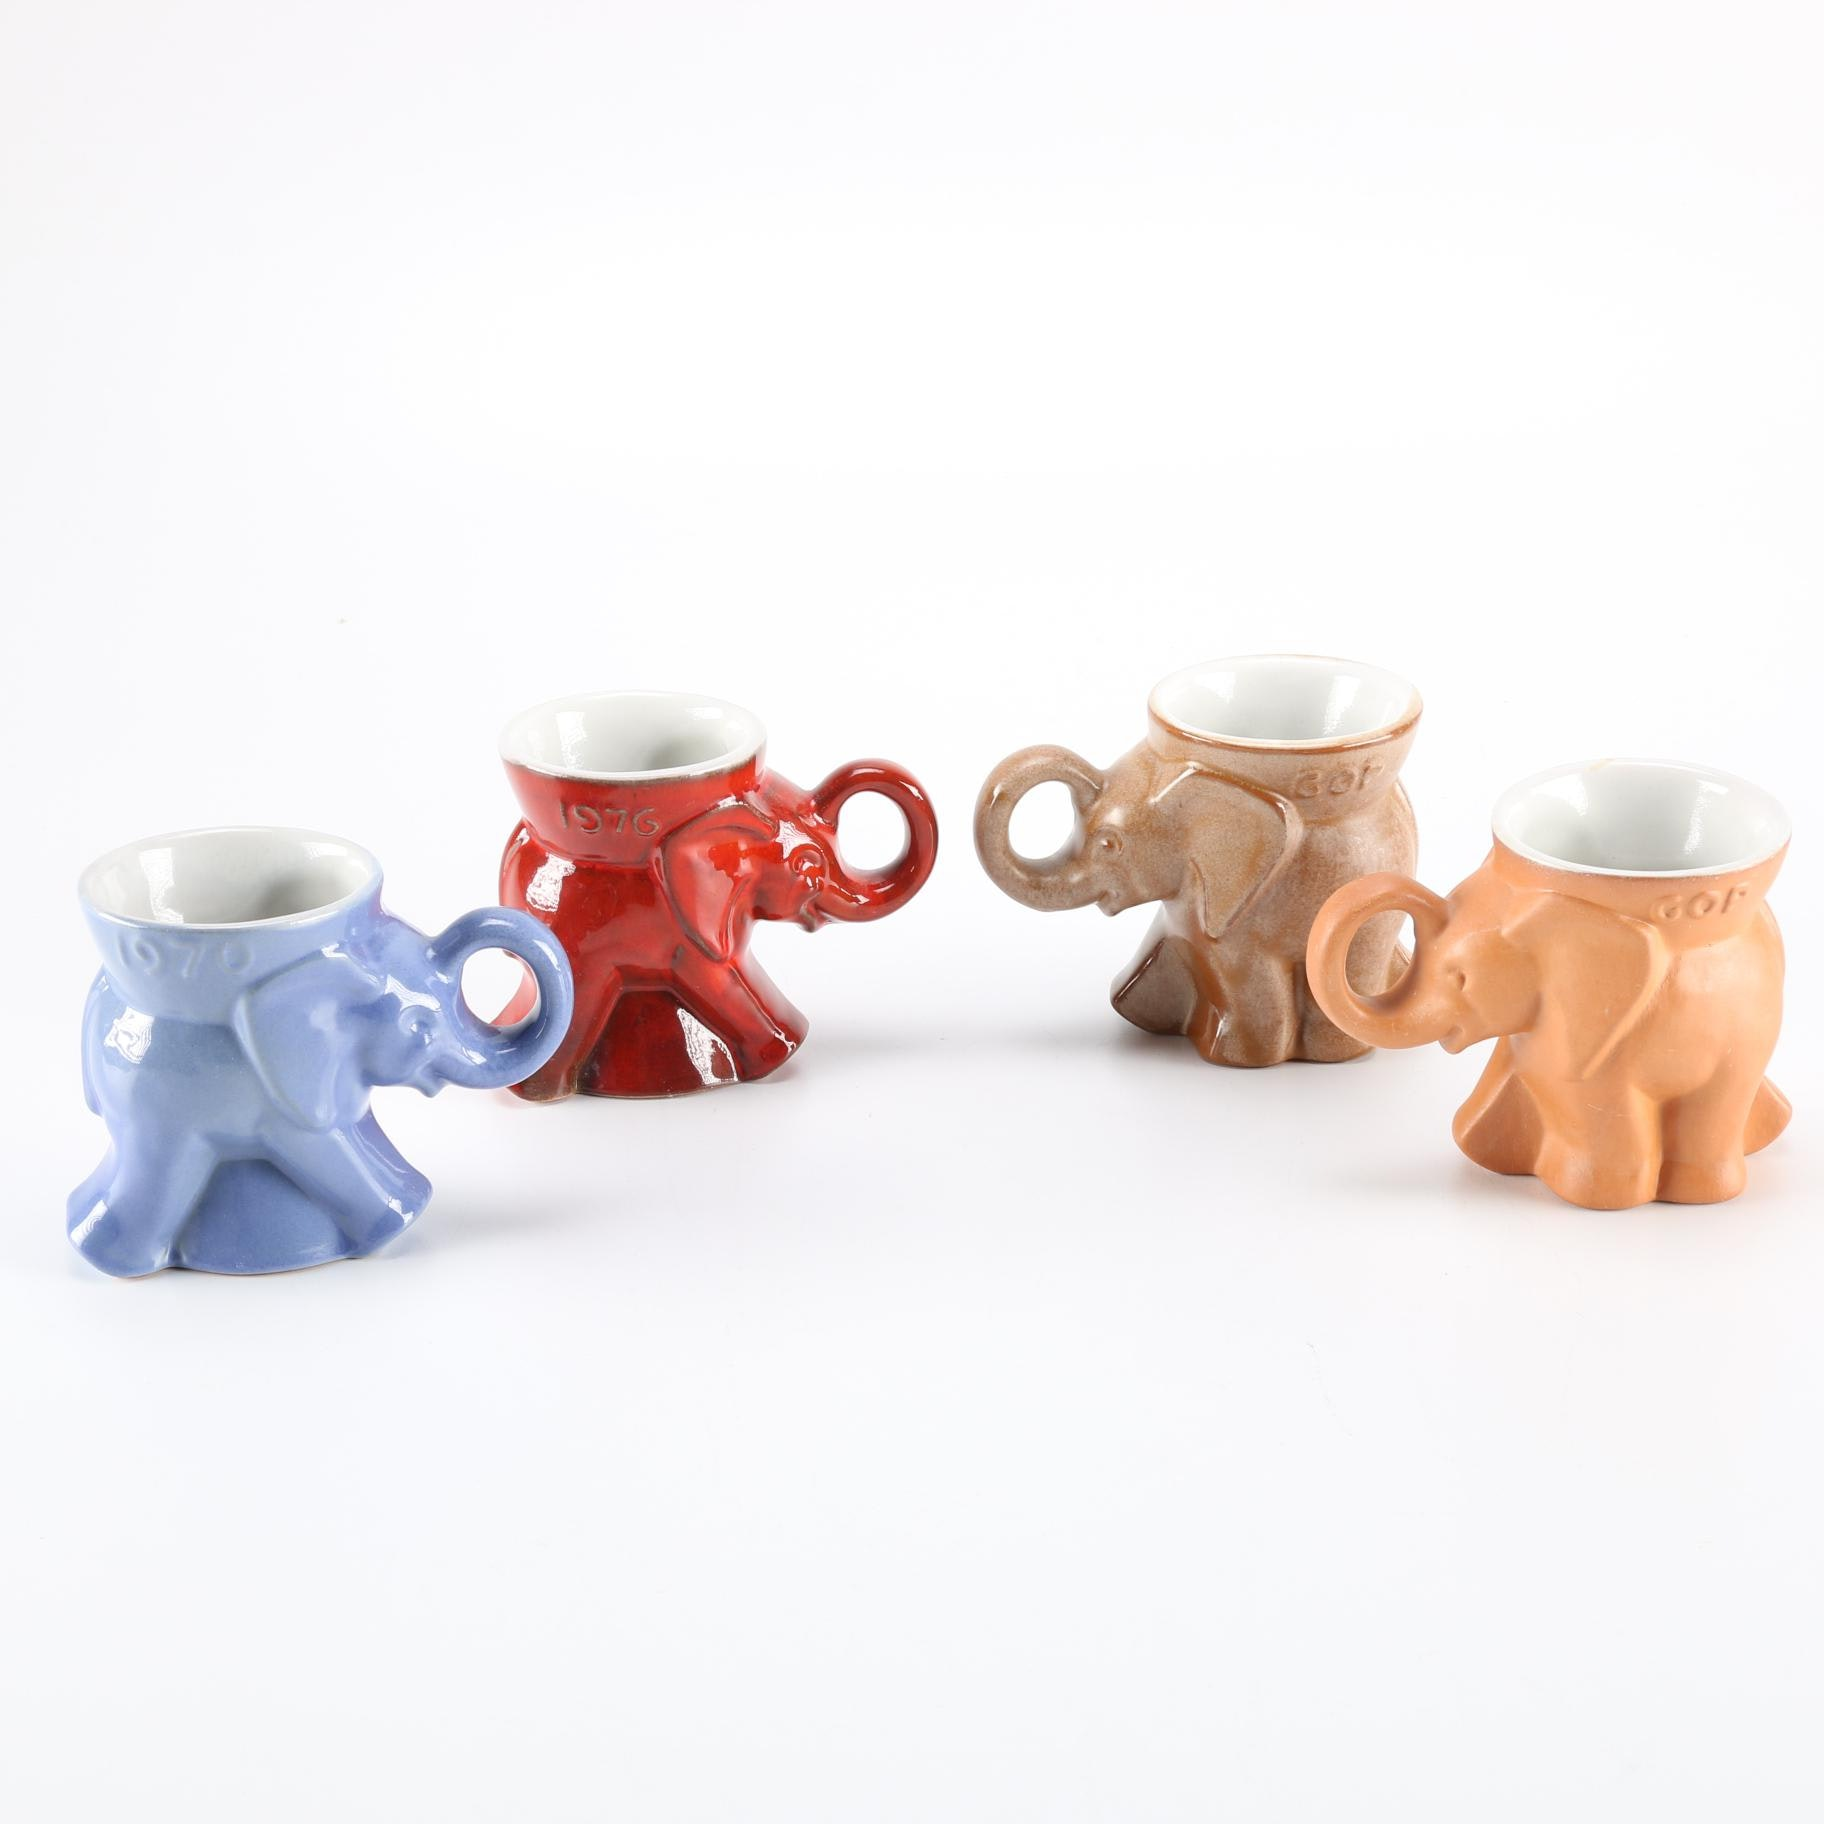 Four Frankoma GOP Elephant Mugs